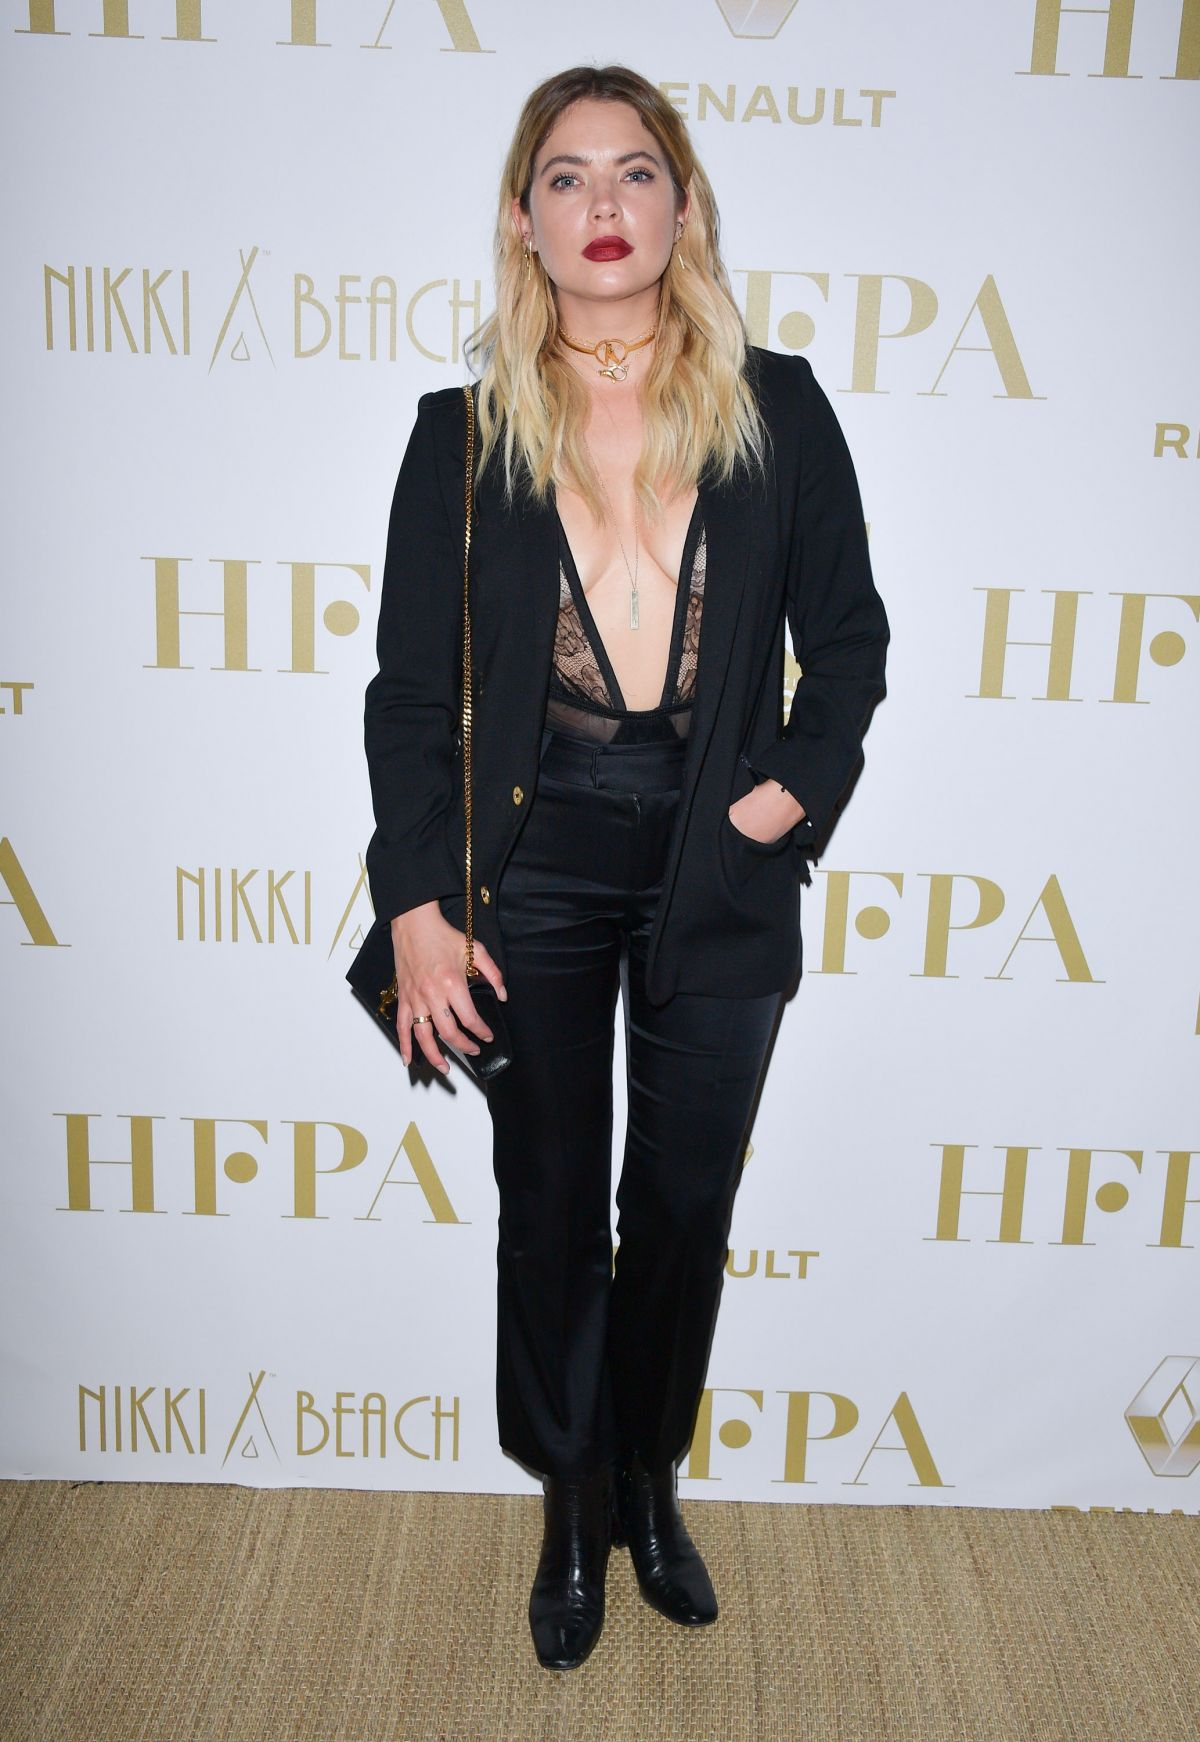 ASHLEY BENSON at Hollywood Foreign Press Association